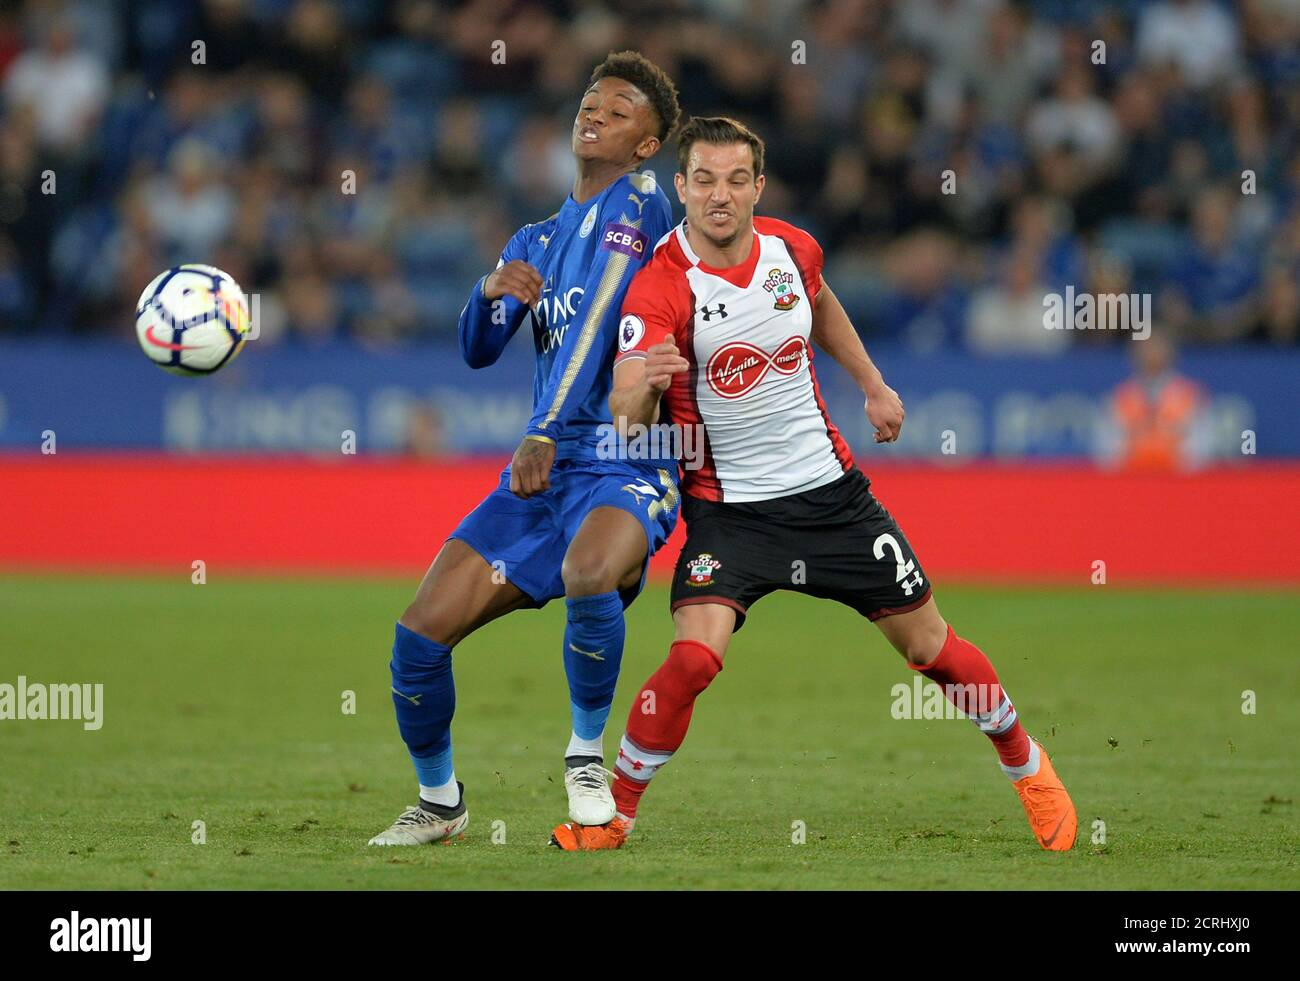 Leicester City Vs Southampton High Resolution Stock Photography And Images Alamy